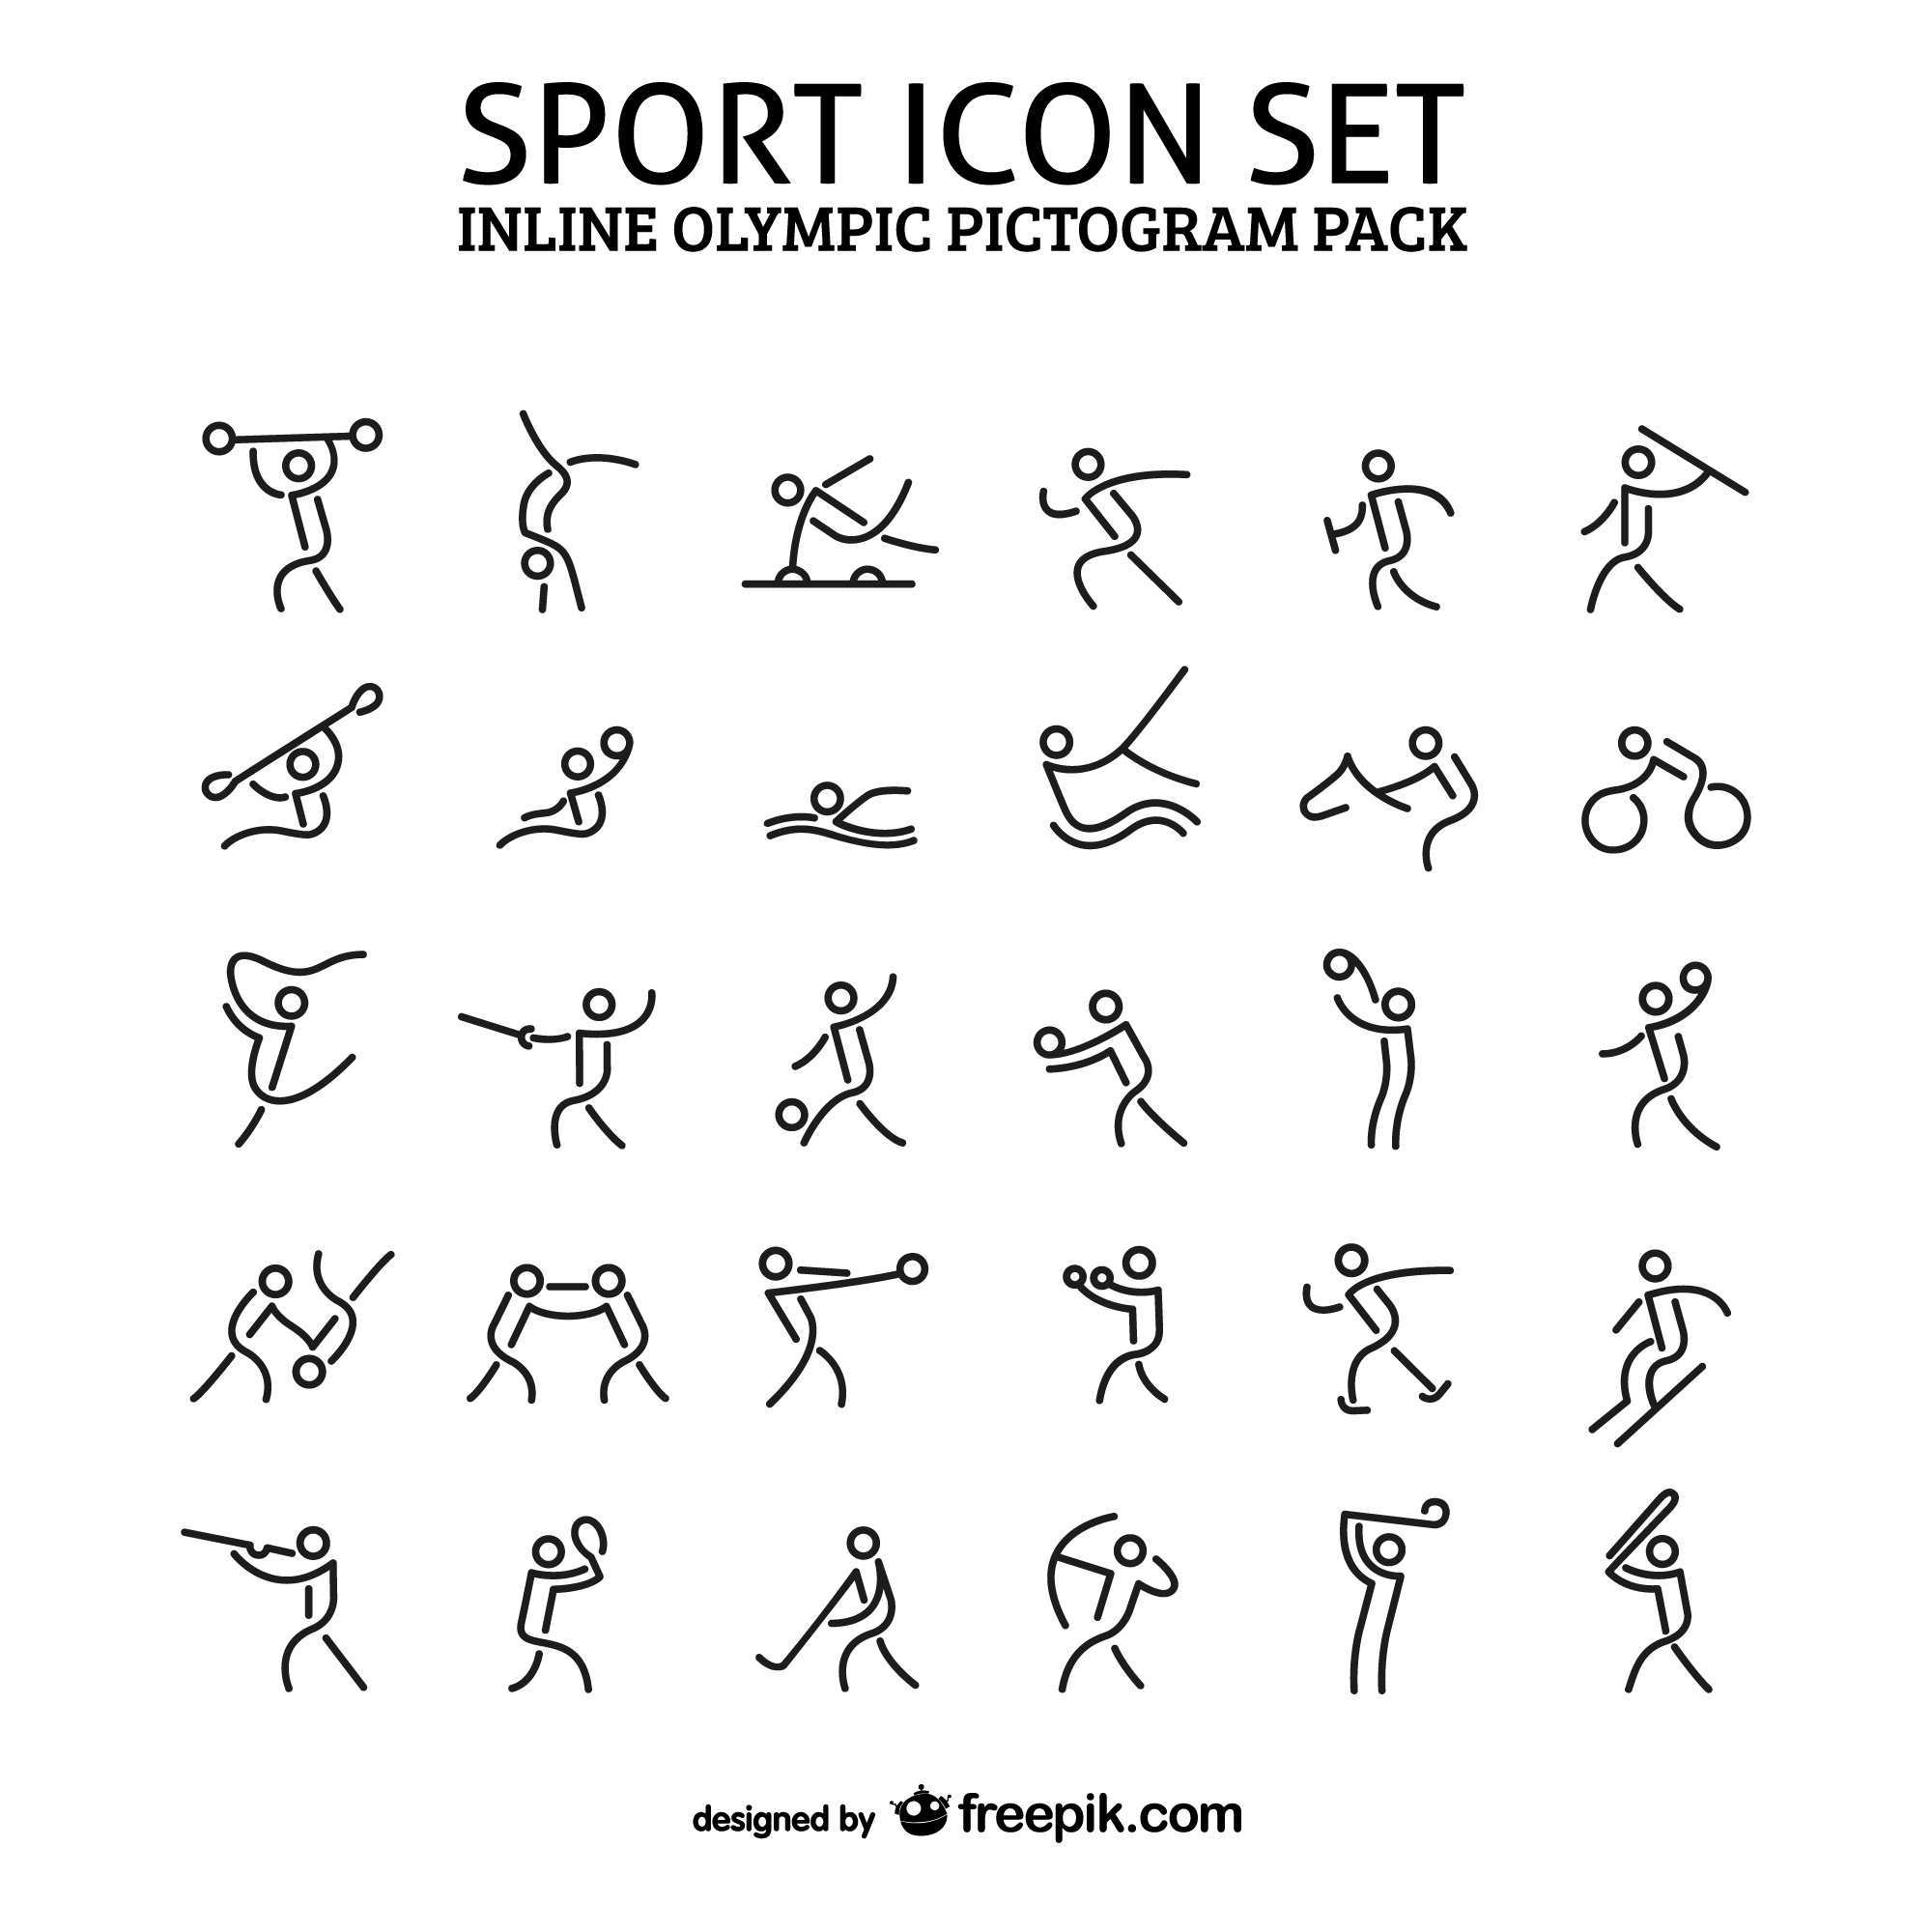 Inline sport icon pictogram pack